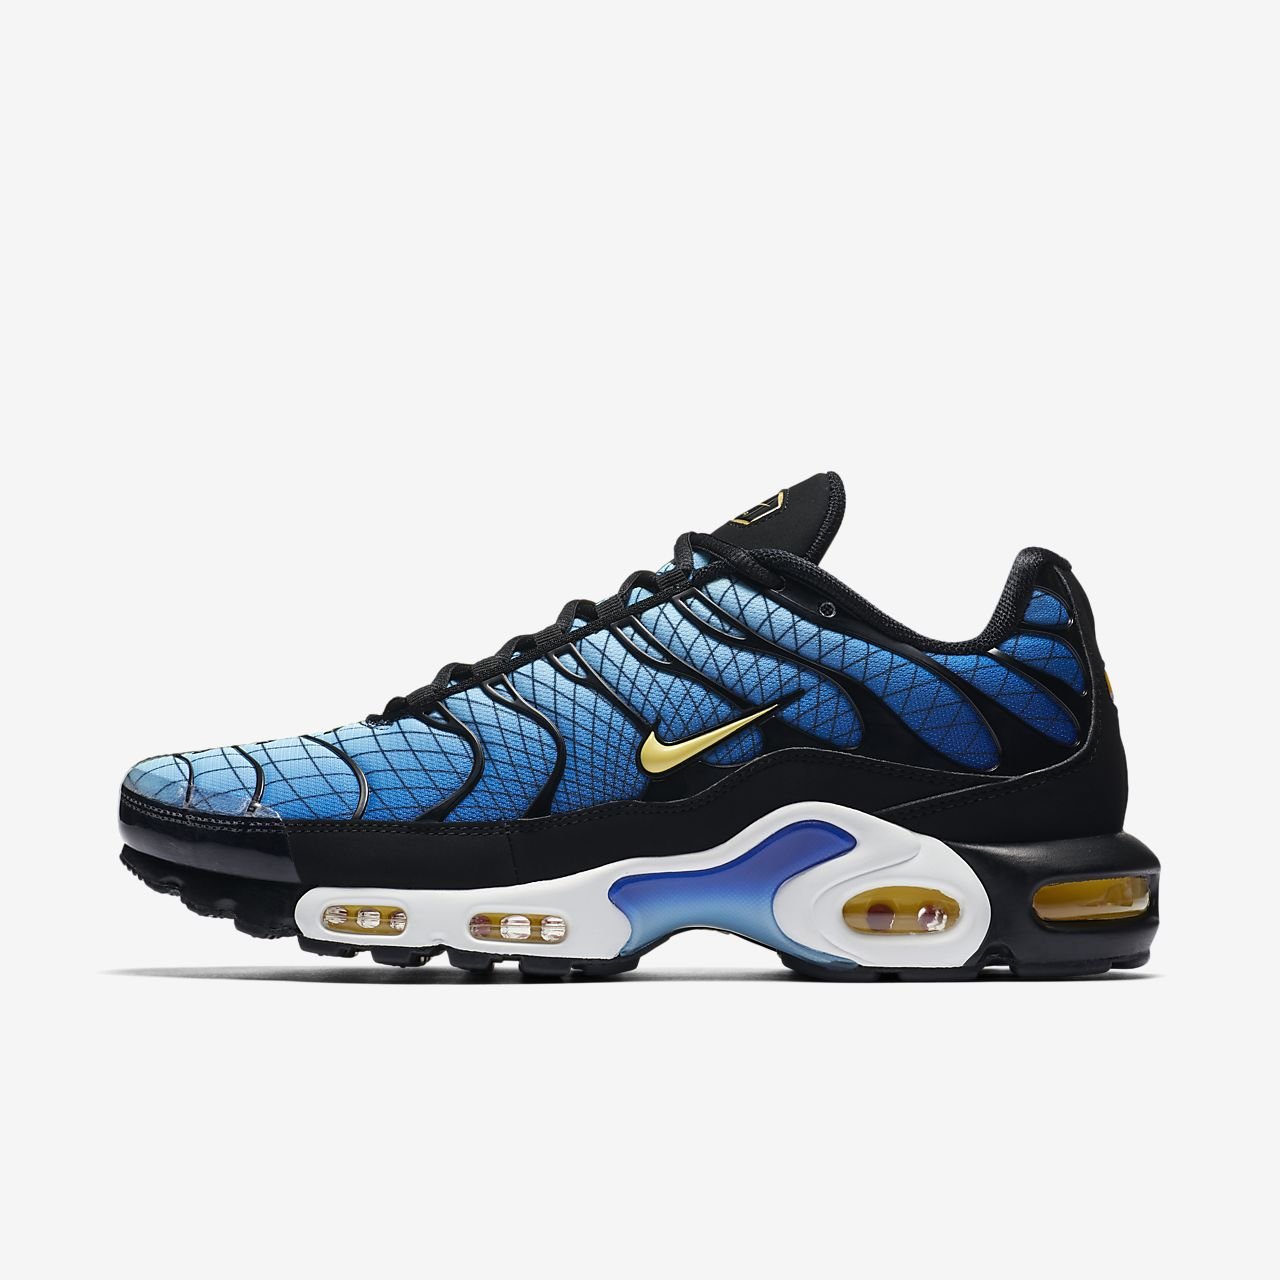 pretty nice ef8aa 1f161 ... Sko Nike Air Max Plus TN SE för män